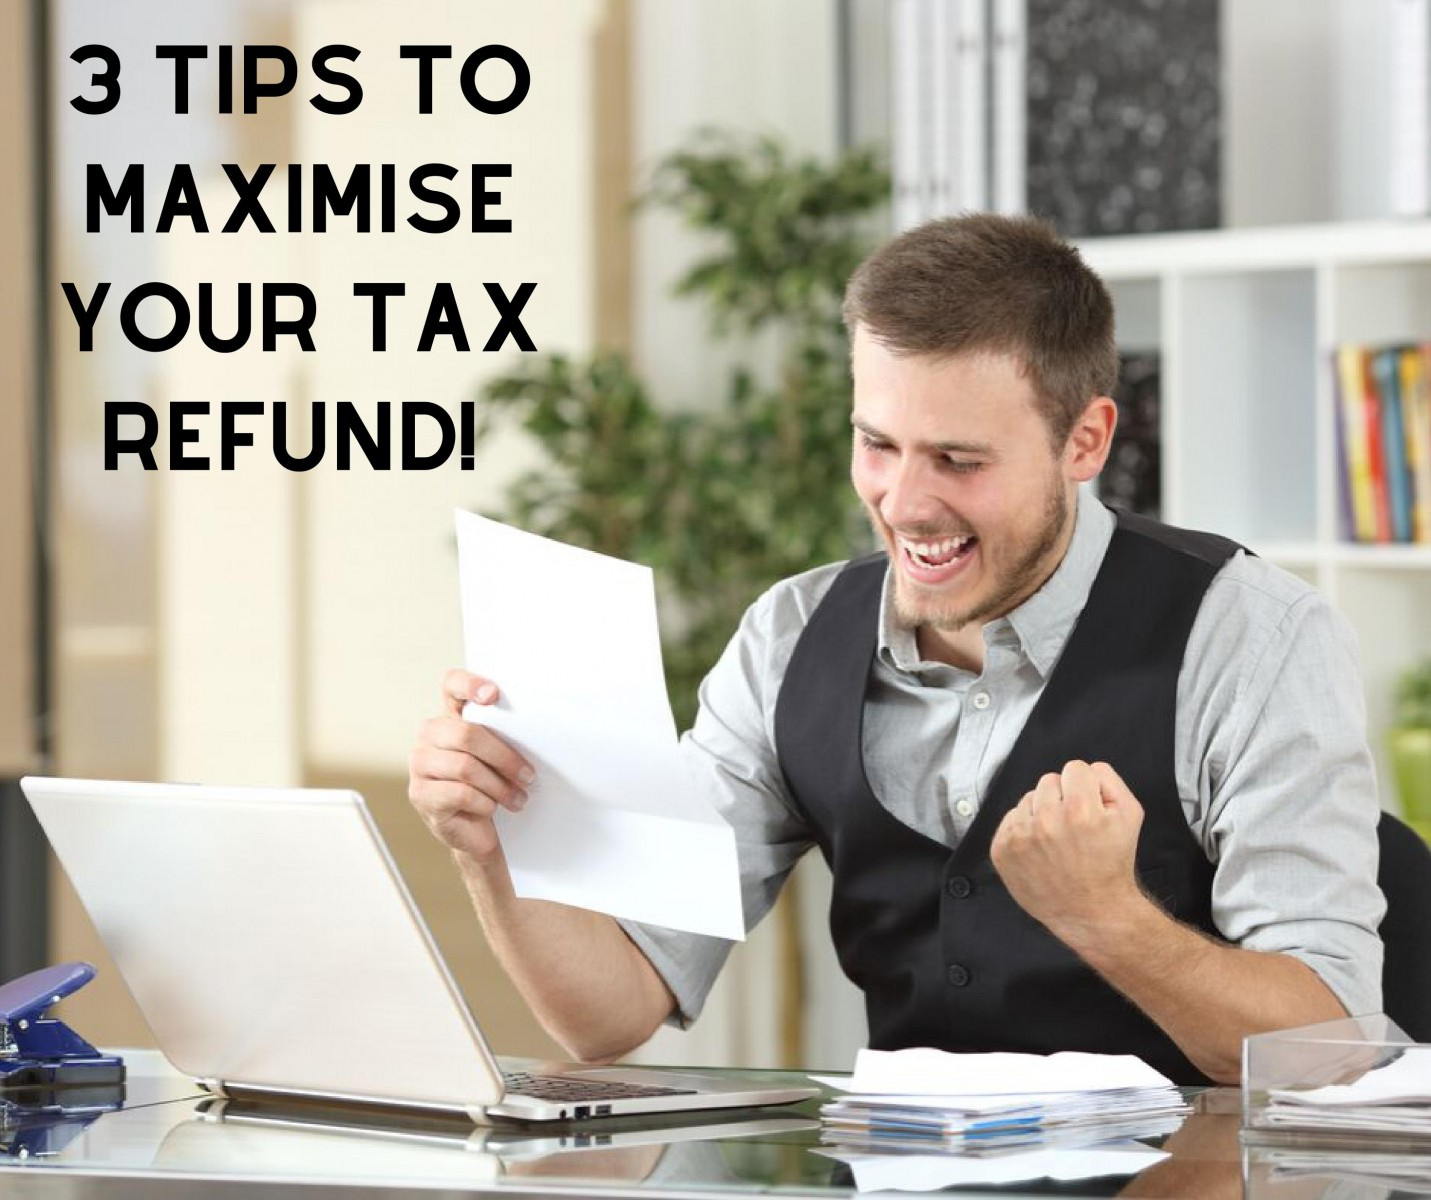 3 Tips To Maximise Your Tax Refund